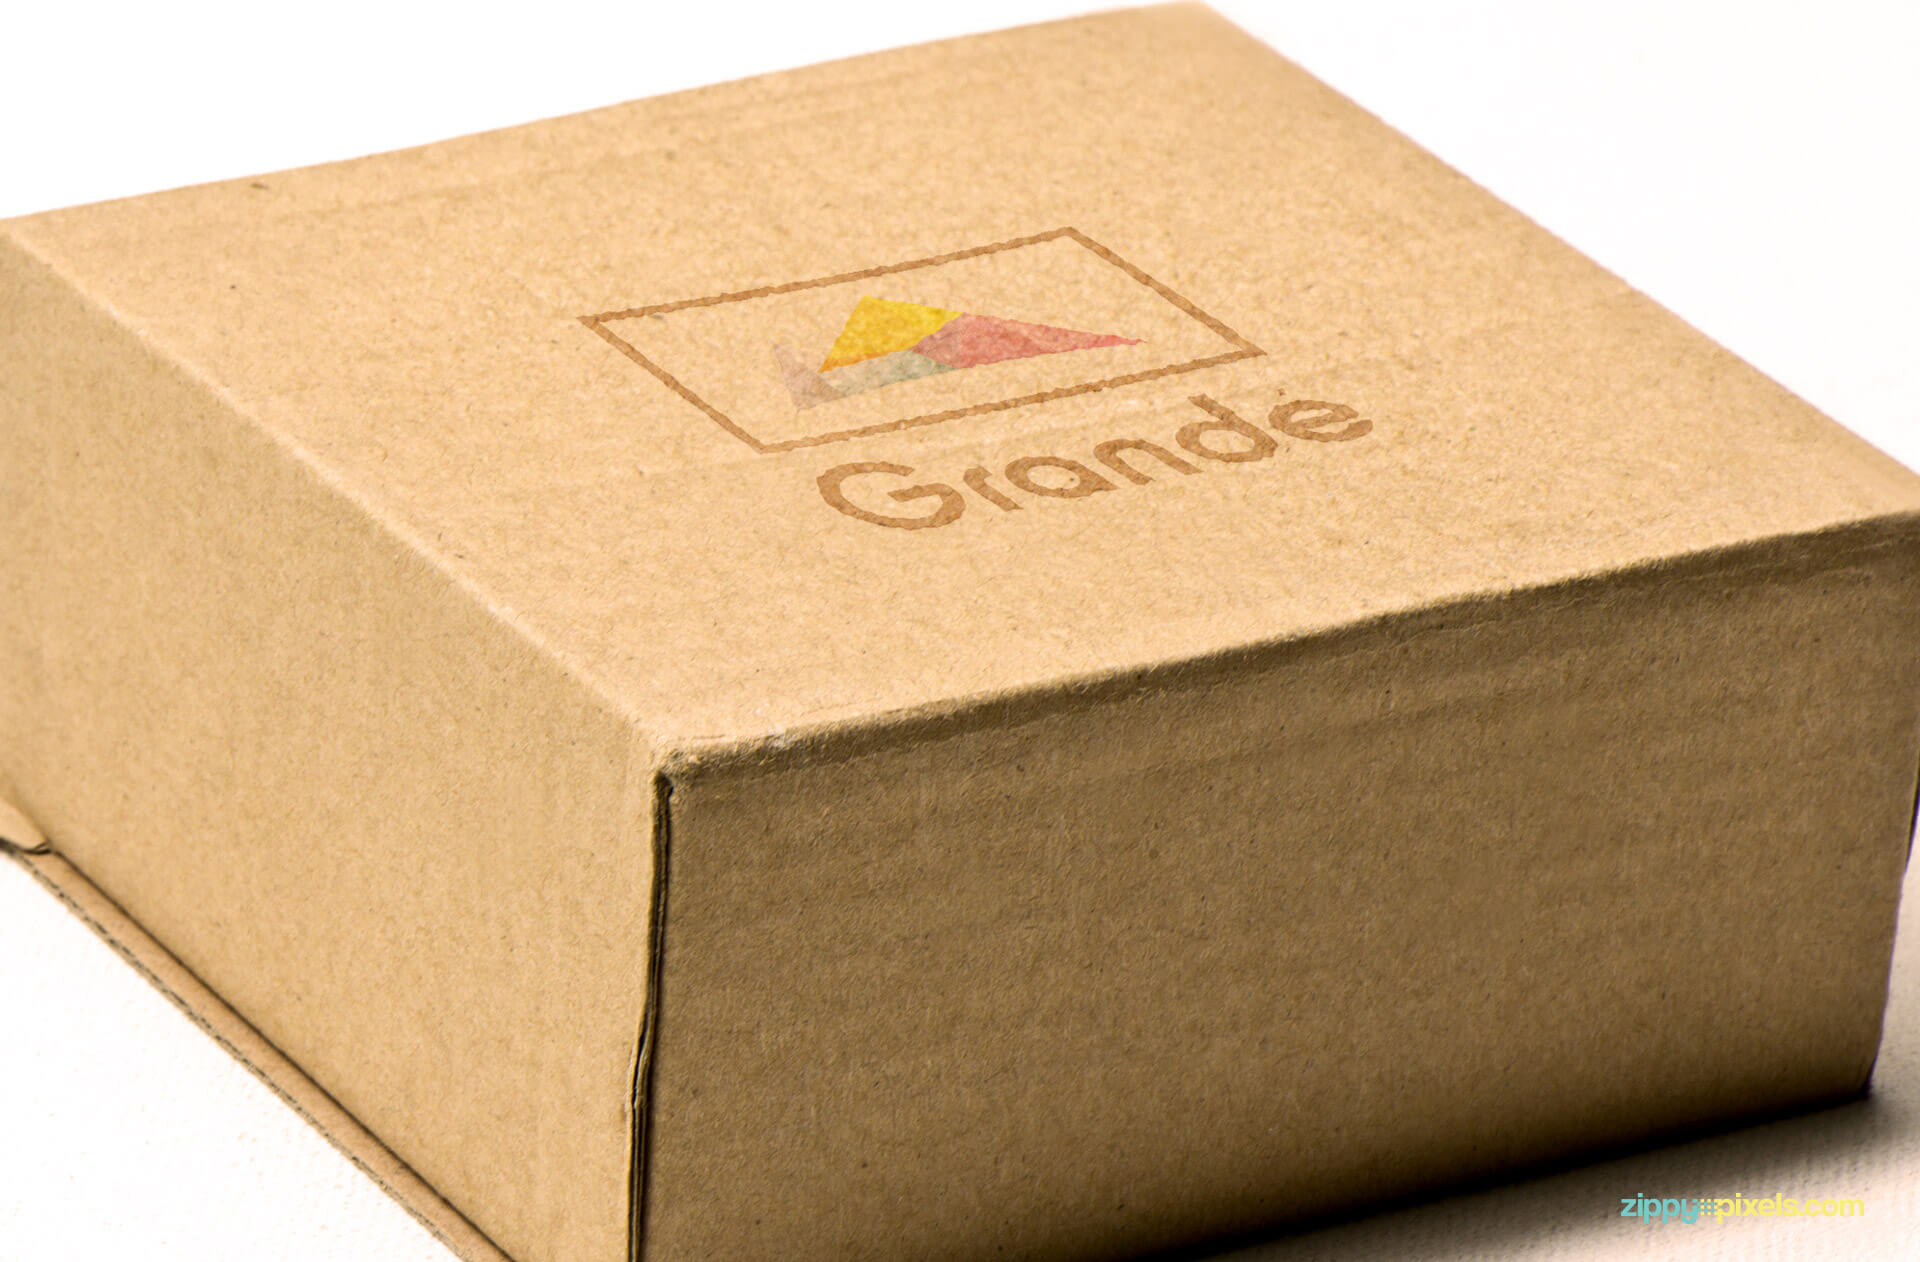 Logo Mockup of Printed Logo on Cardboard Box